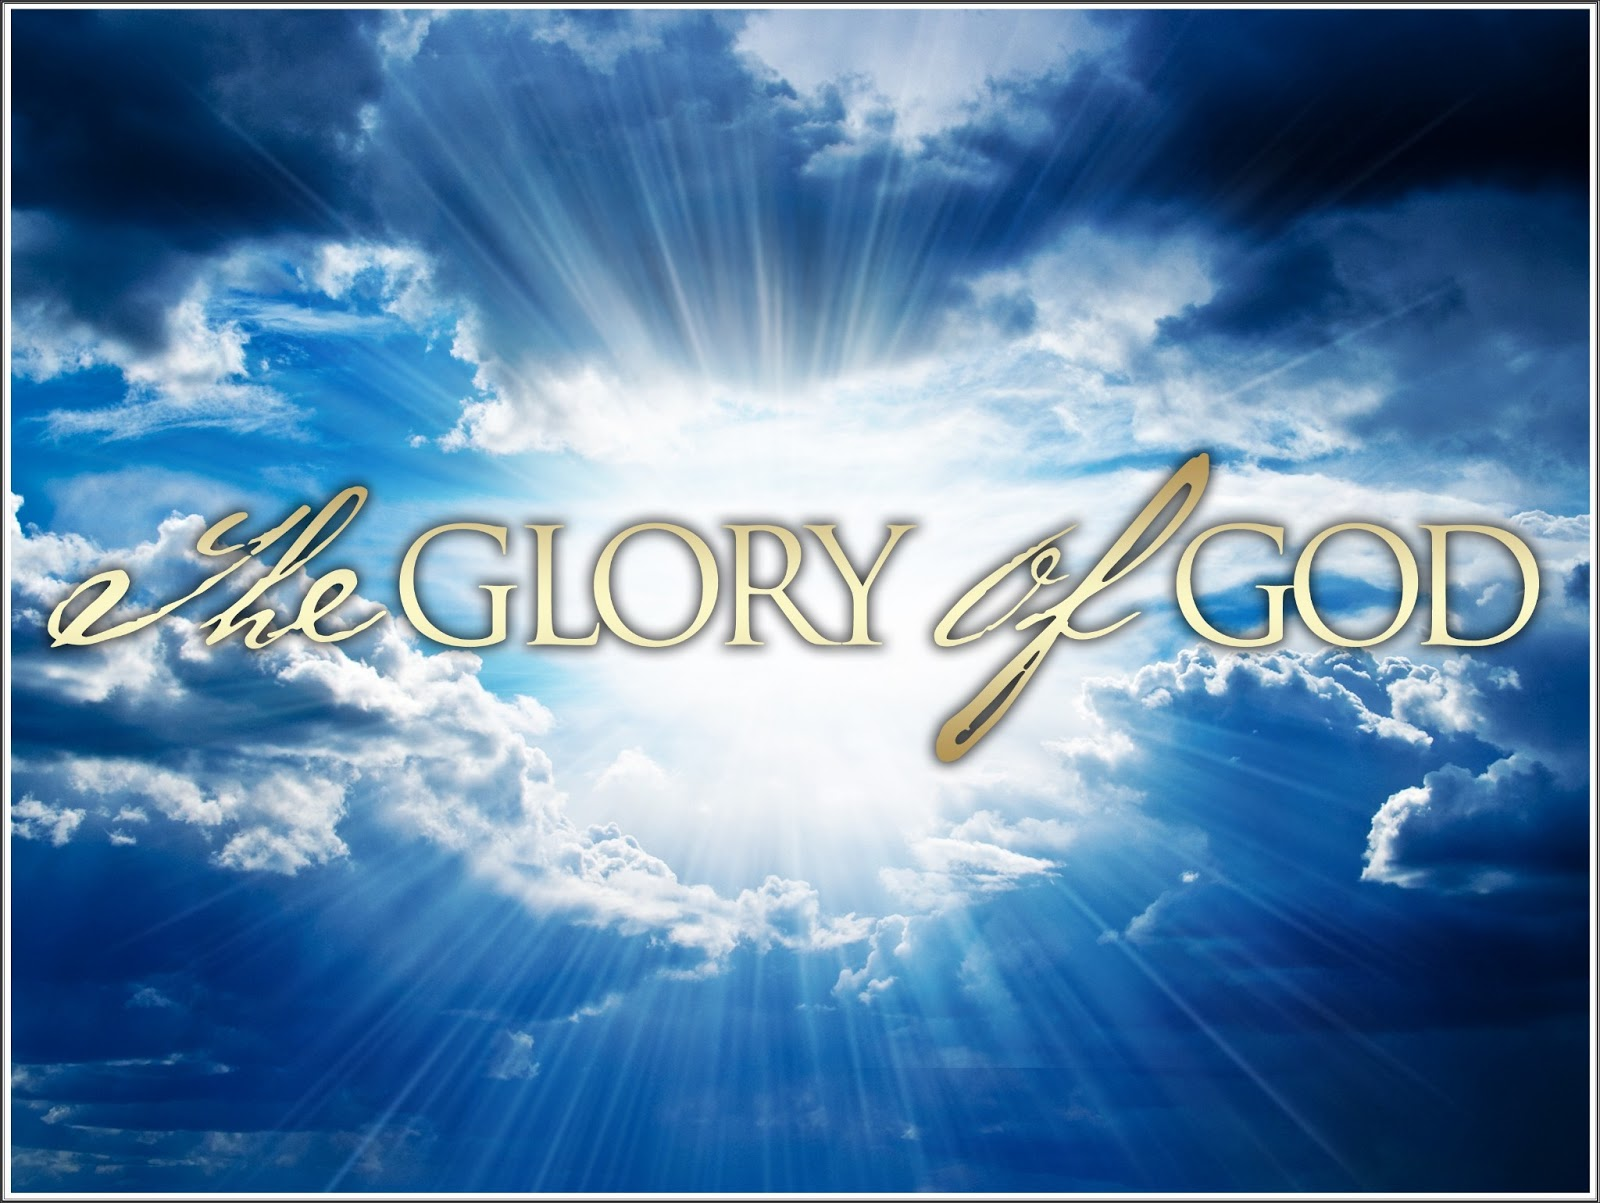 glory reflection A glory is an optical phenomenon, resembling an iconic saint's halo around the shadow of the observer's head, caused by sunlight or (more rarely) moonlight interacting with the tiny water droplets that compose mist or clouds.